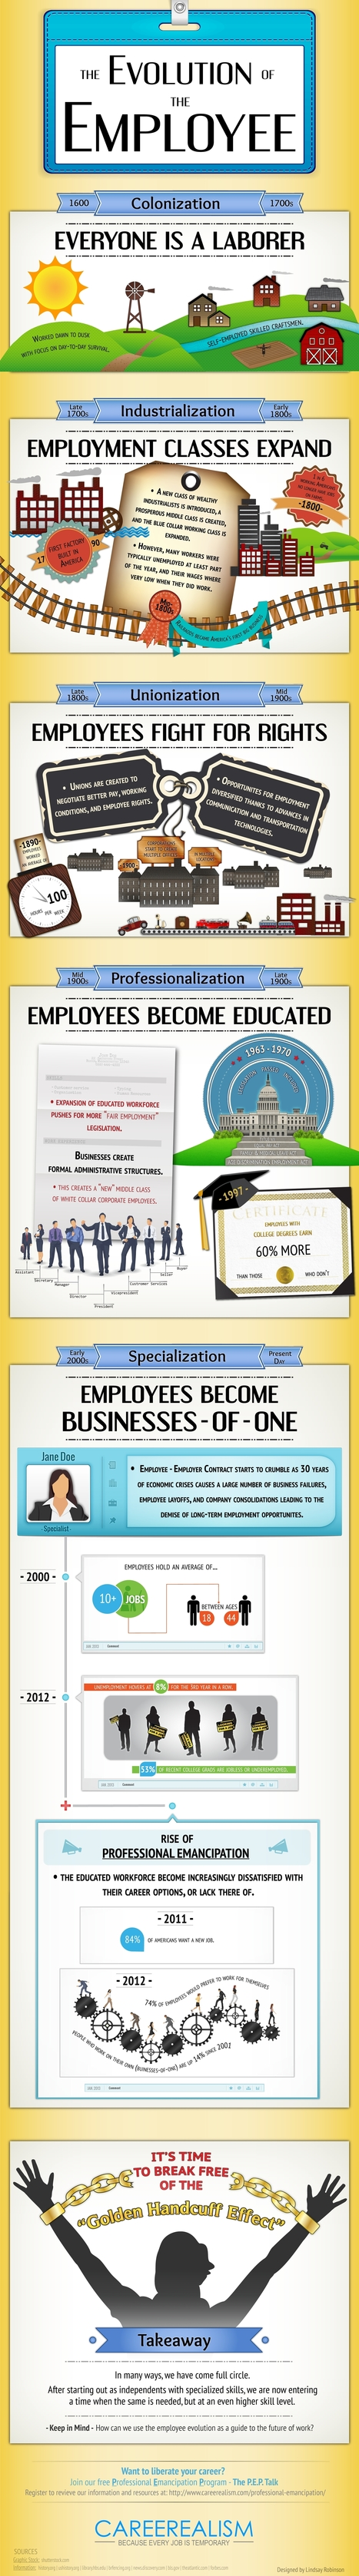 A Pictorial Representation of the Evolution of Work | The New way of Work | Scoop.it